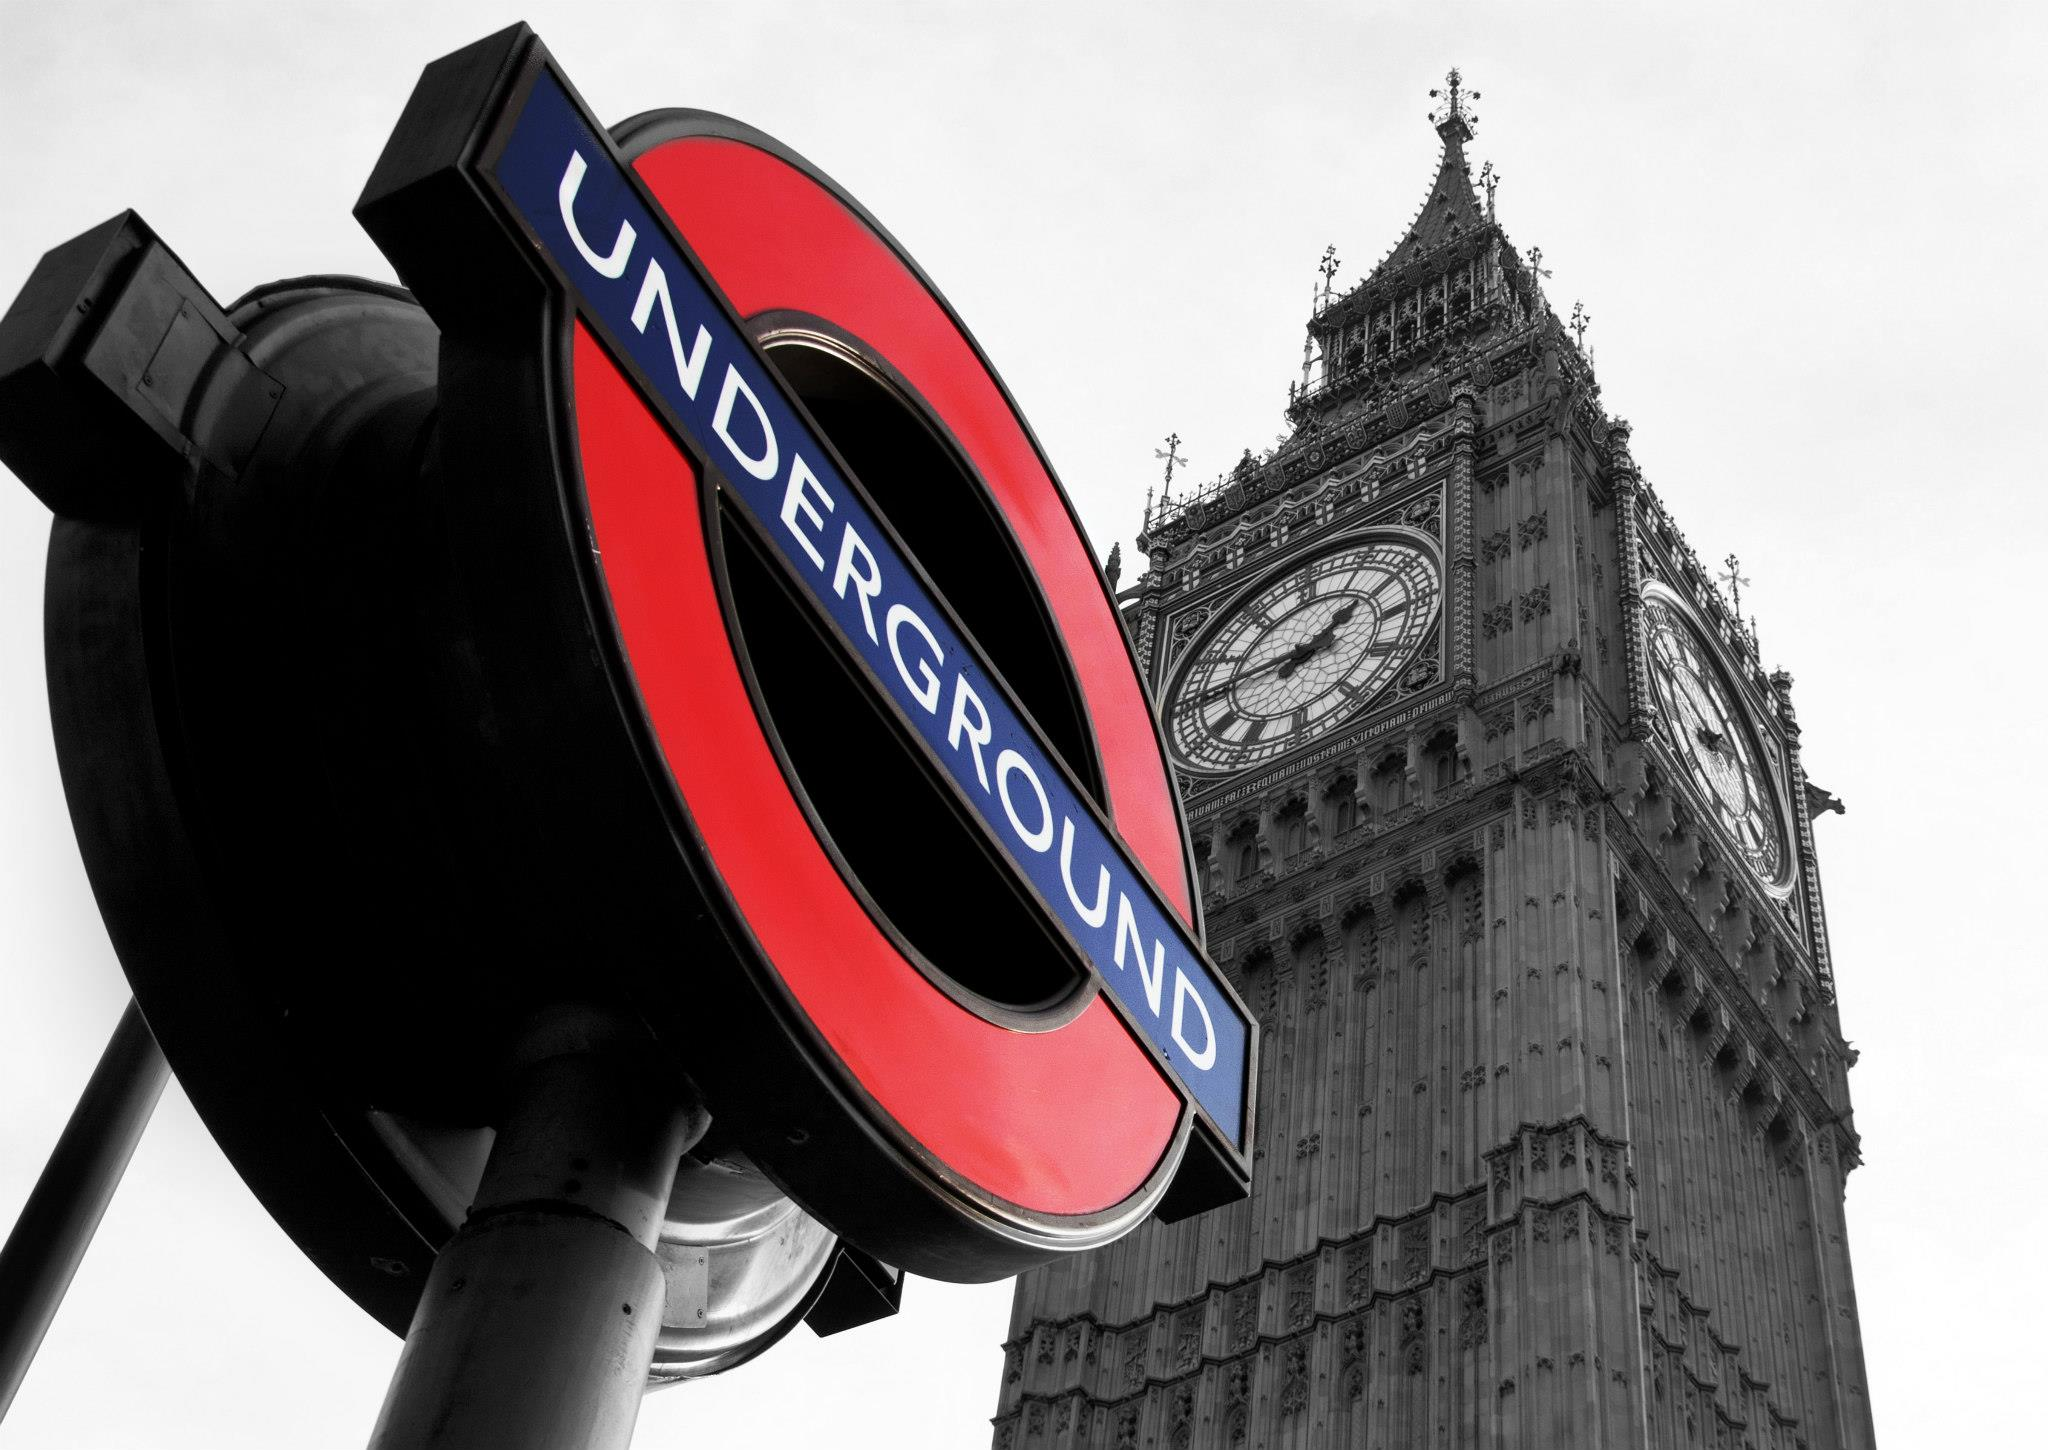 London Underground & Big Ben